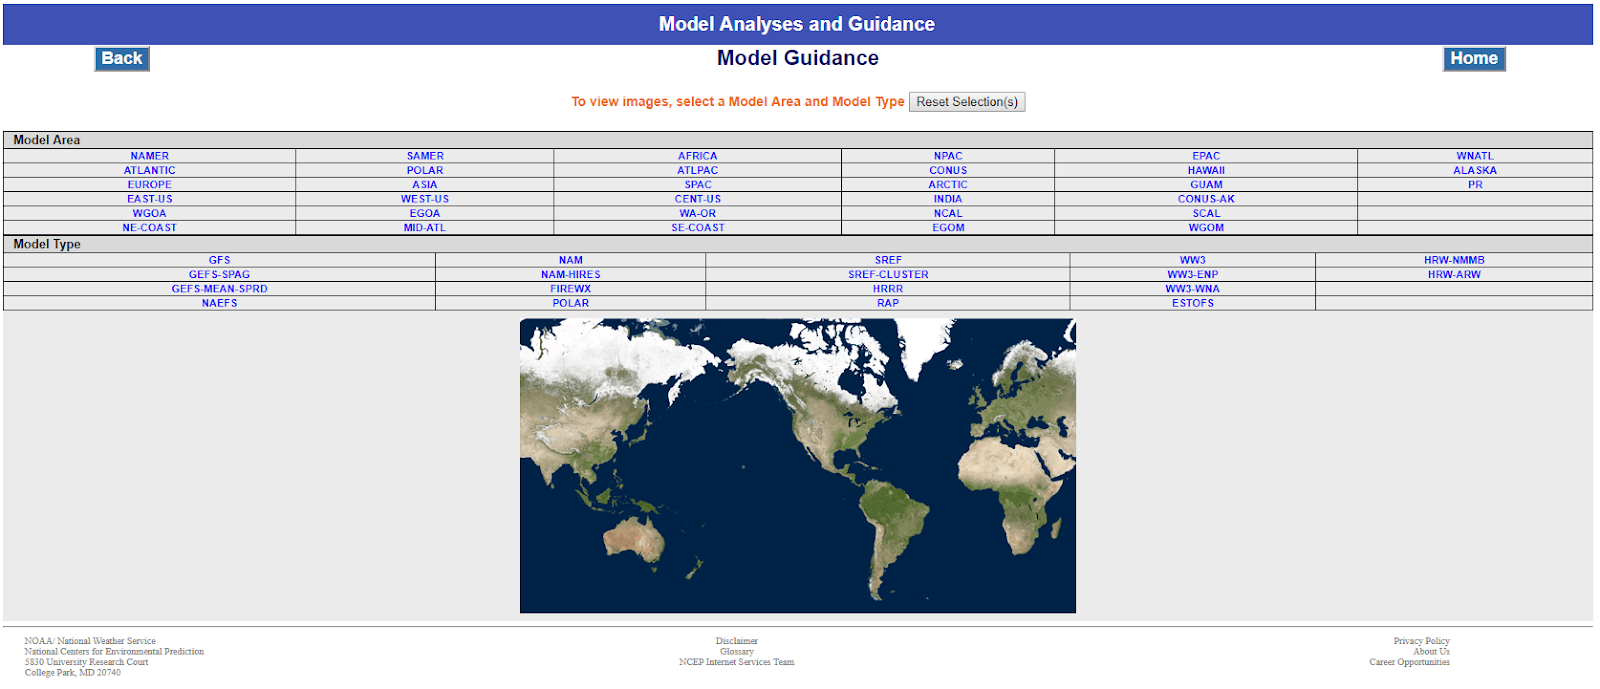 Model Analysis and Guidance Prototyping